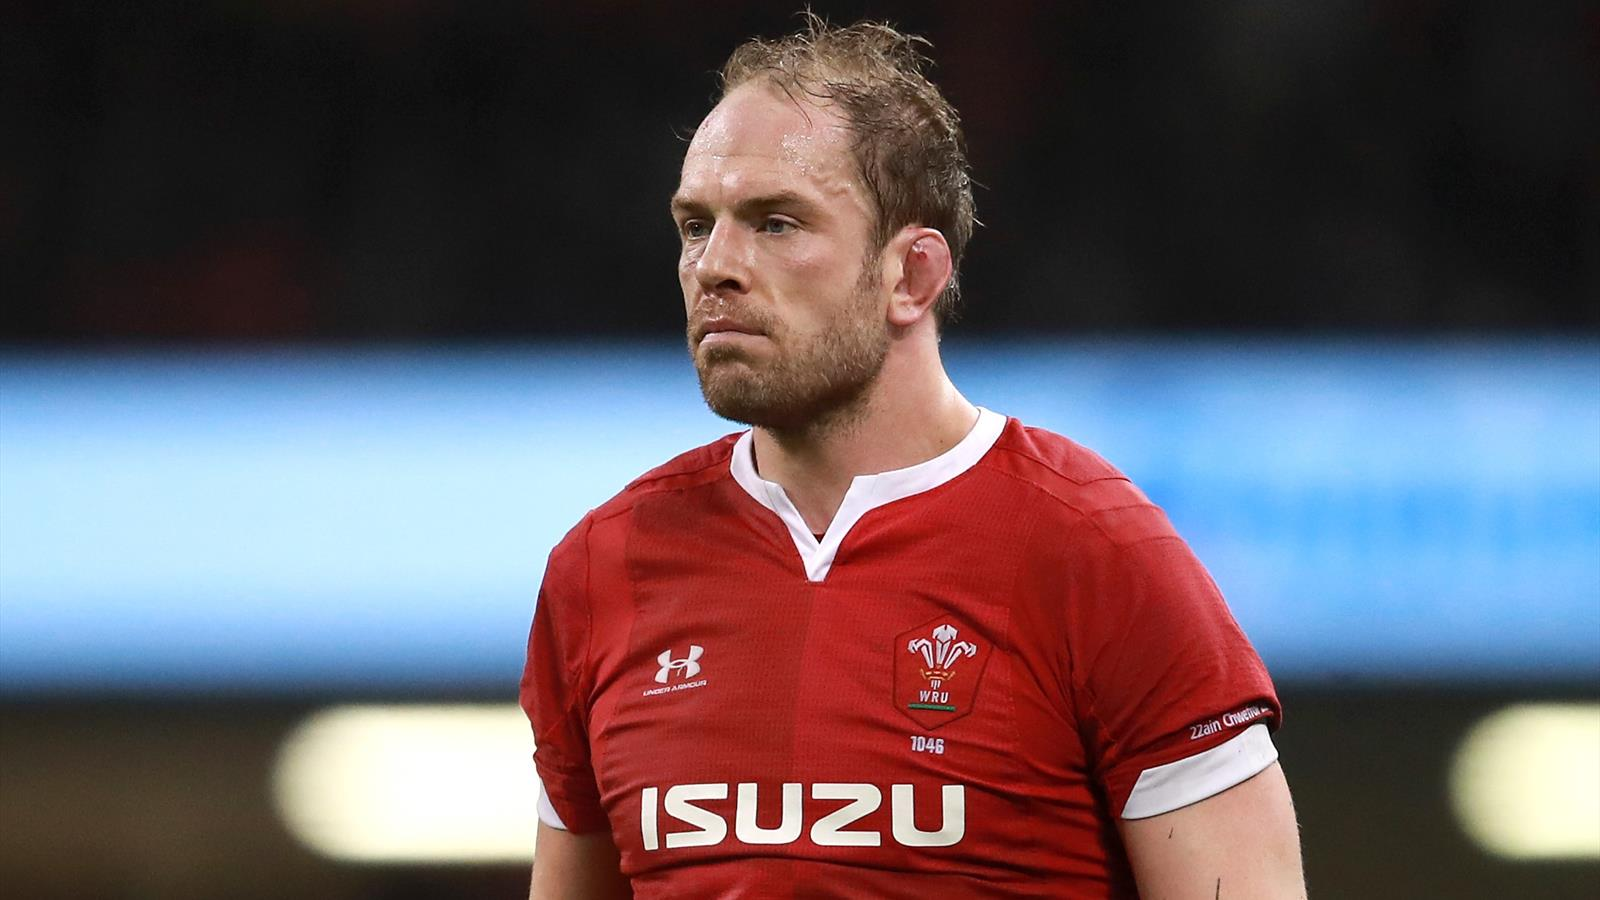 Galles : Alun-Wyn Jones sur le coup de poing de Jake Ball ?